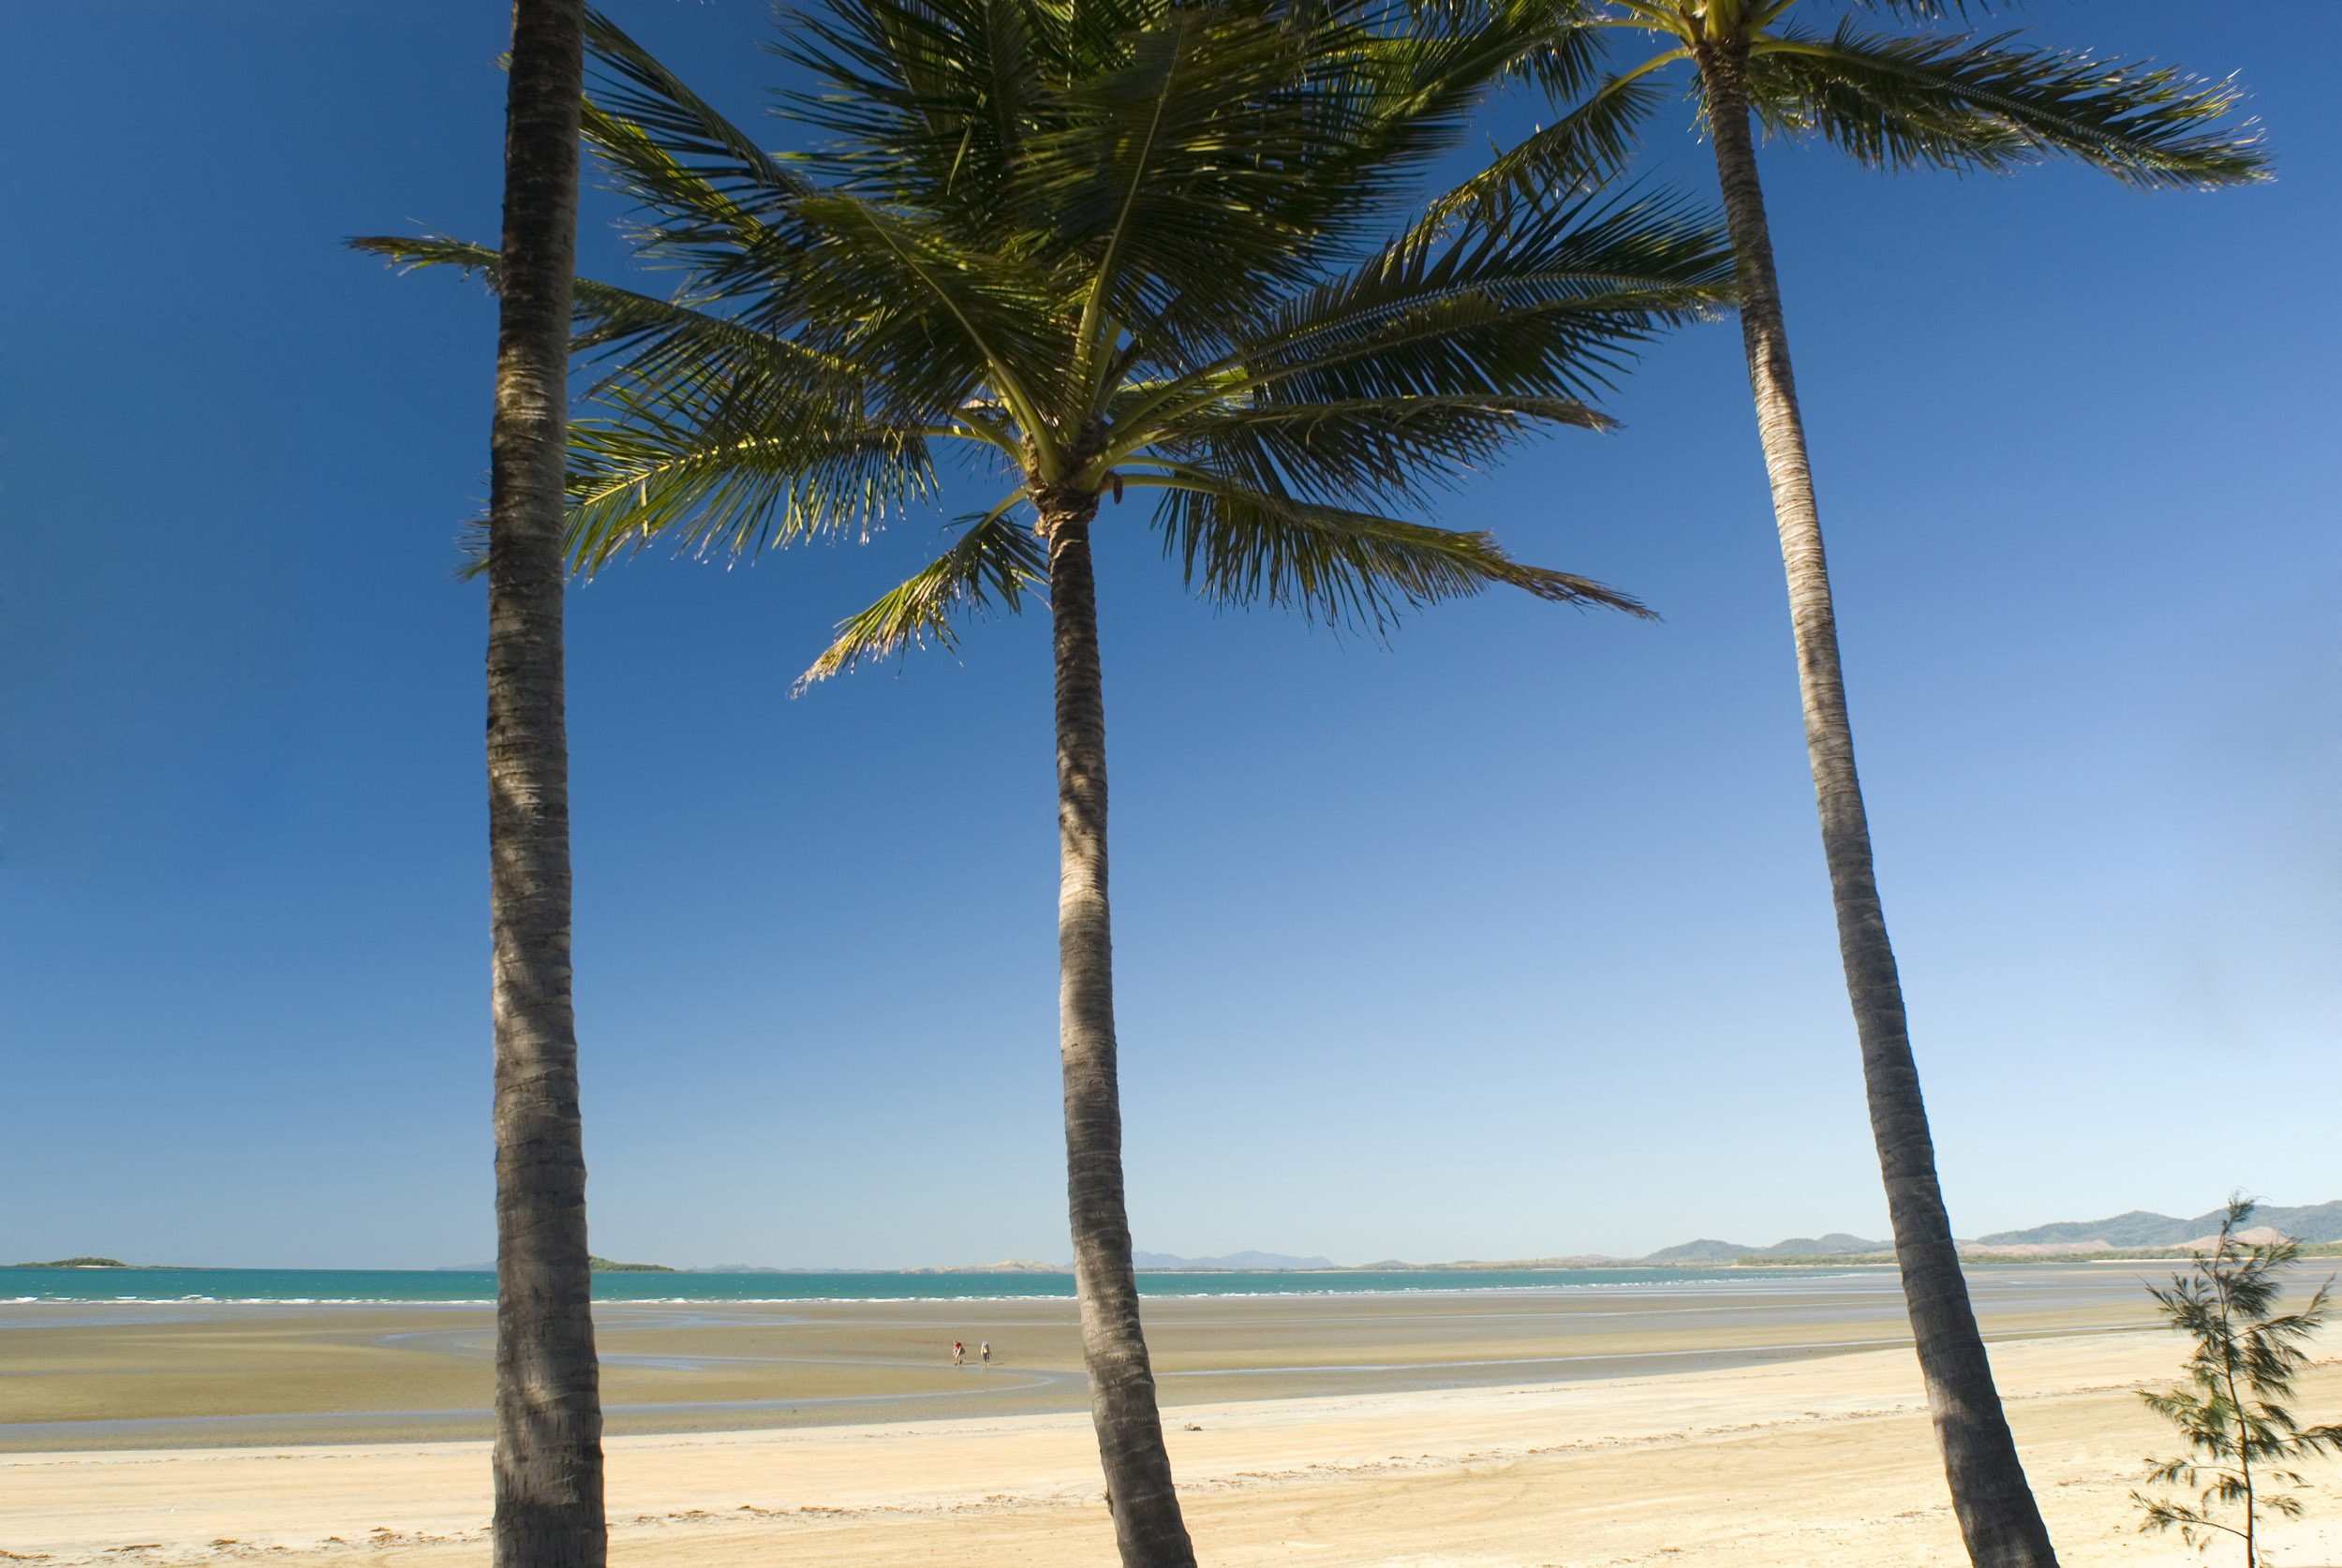 Three palm trees under a clear, blue summer day on an empty tropical beach in northern Australia.